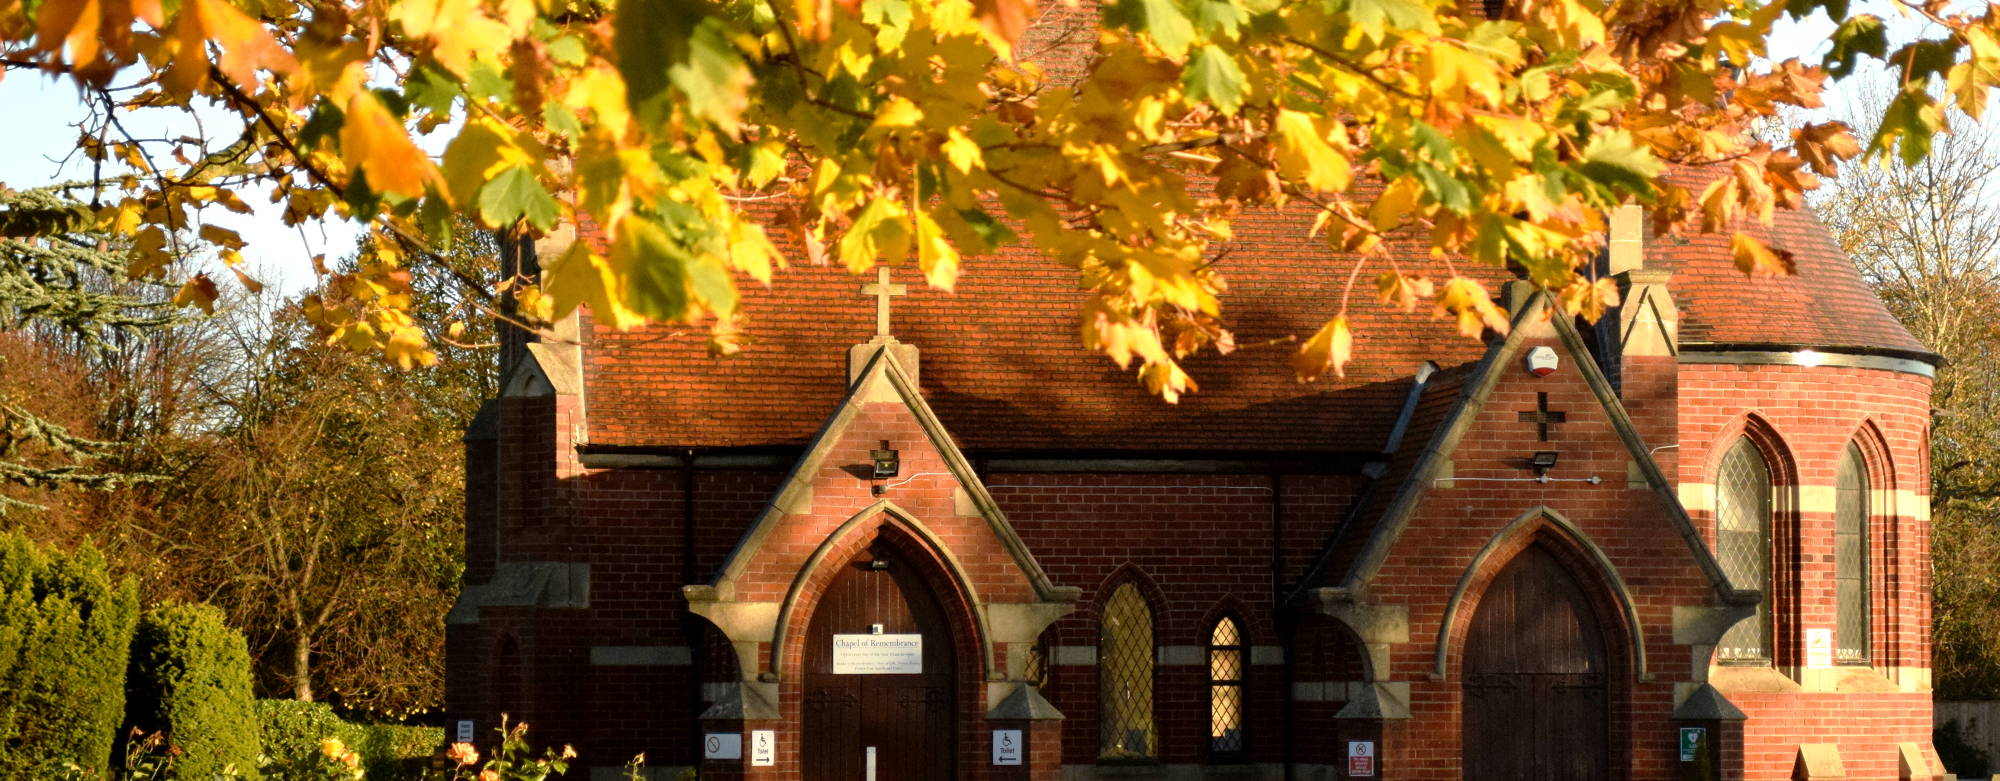 The Chapel of Remembrance at Teesside Crematorium in the sunlight and artistically framed by yellow autumn leaves